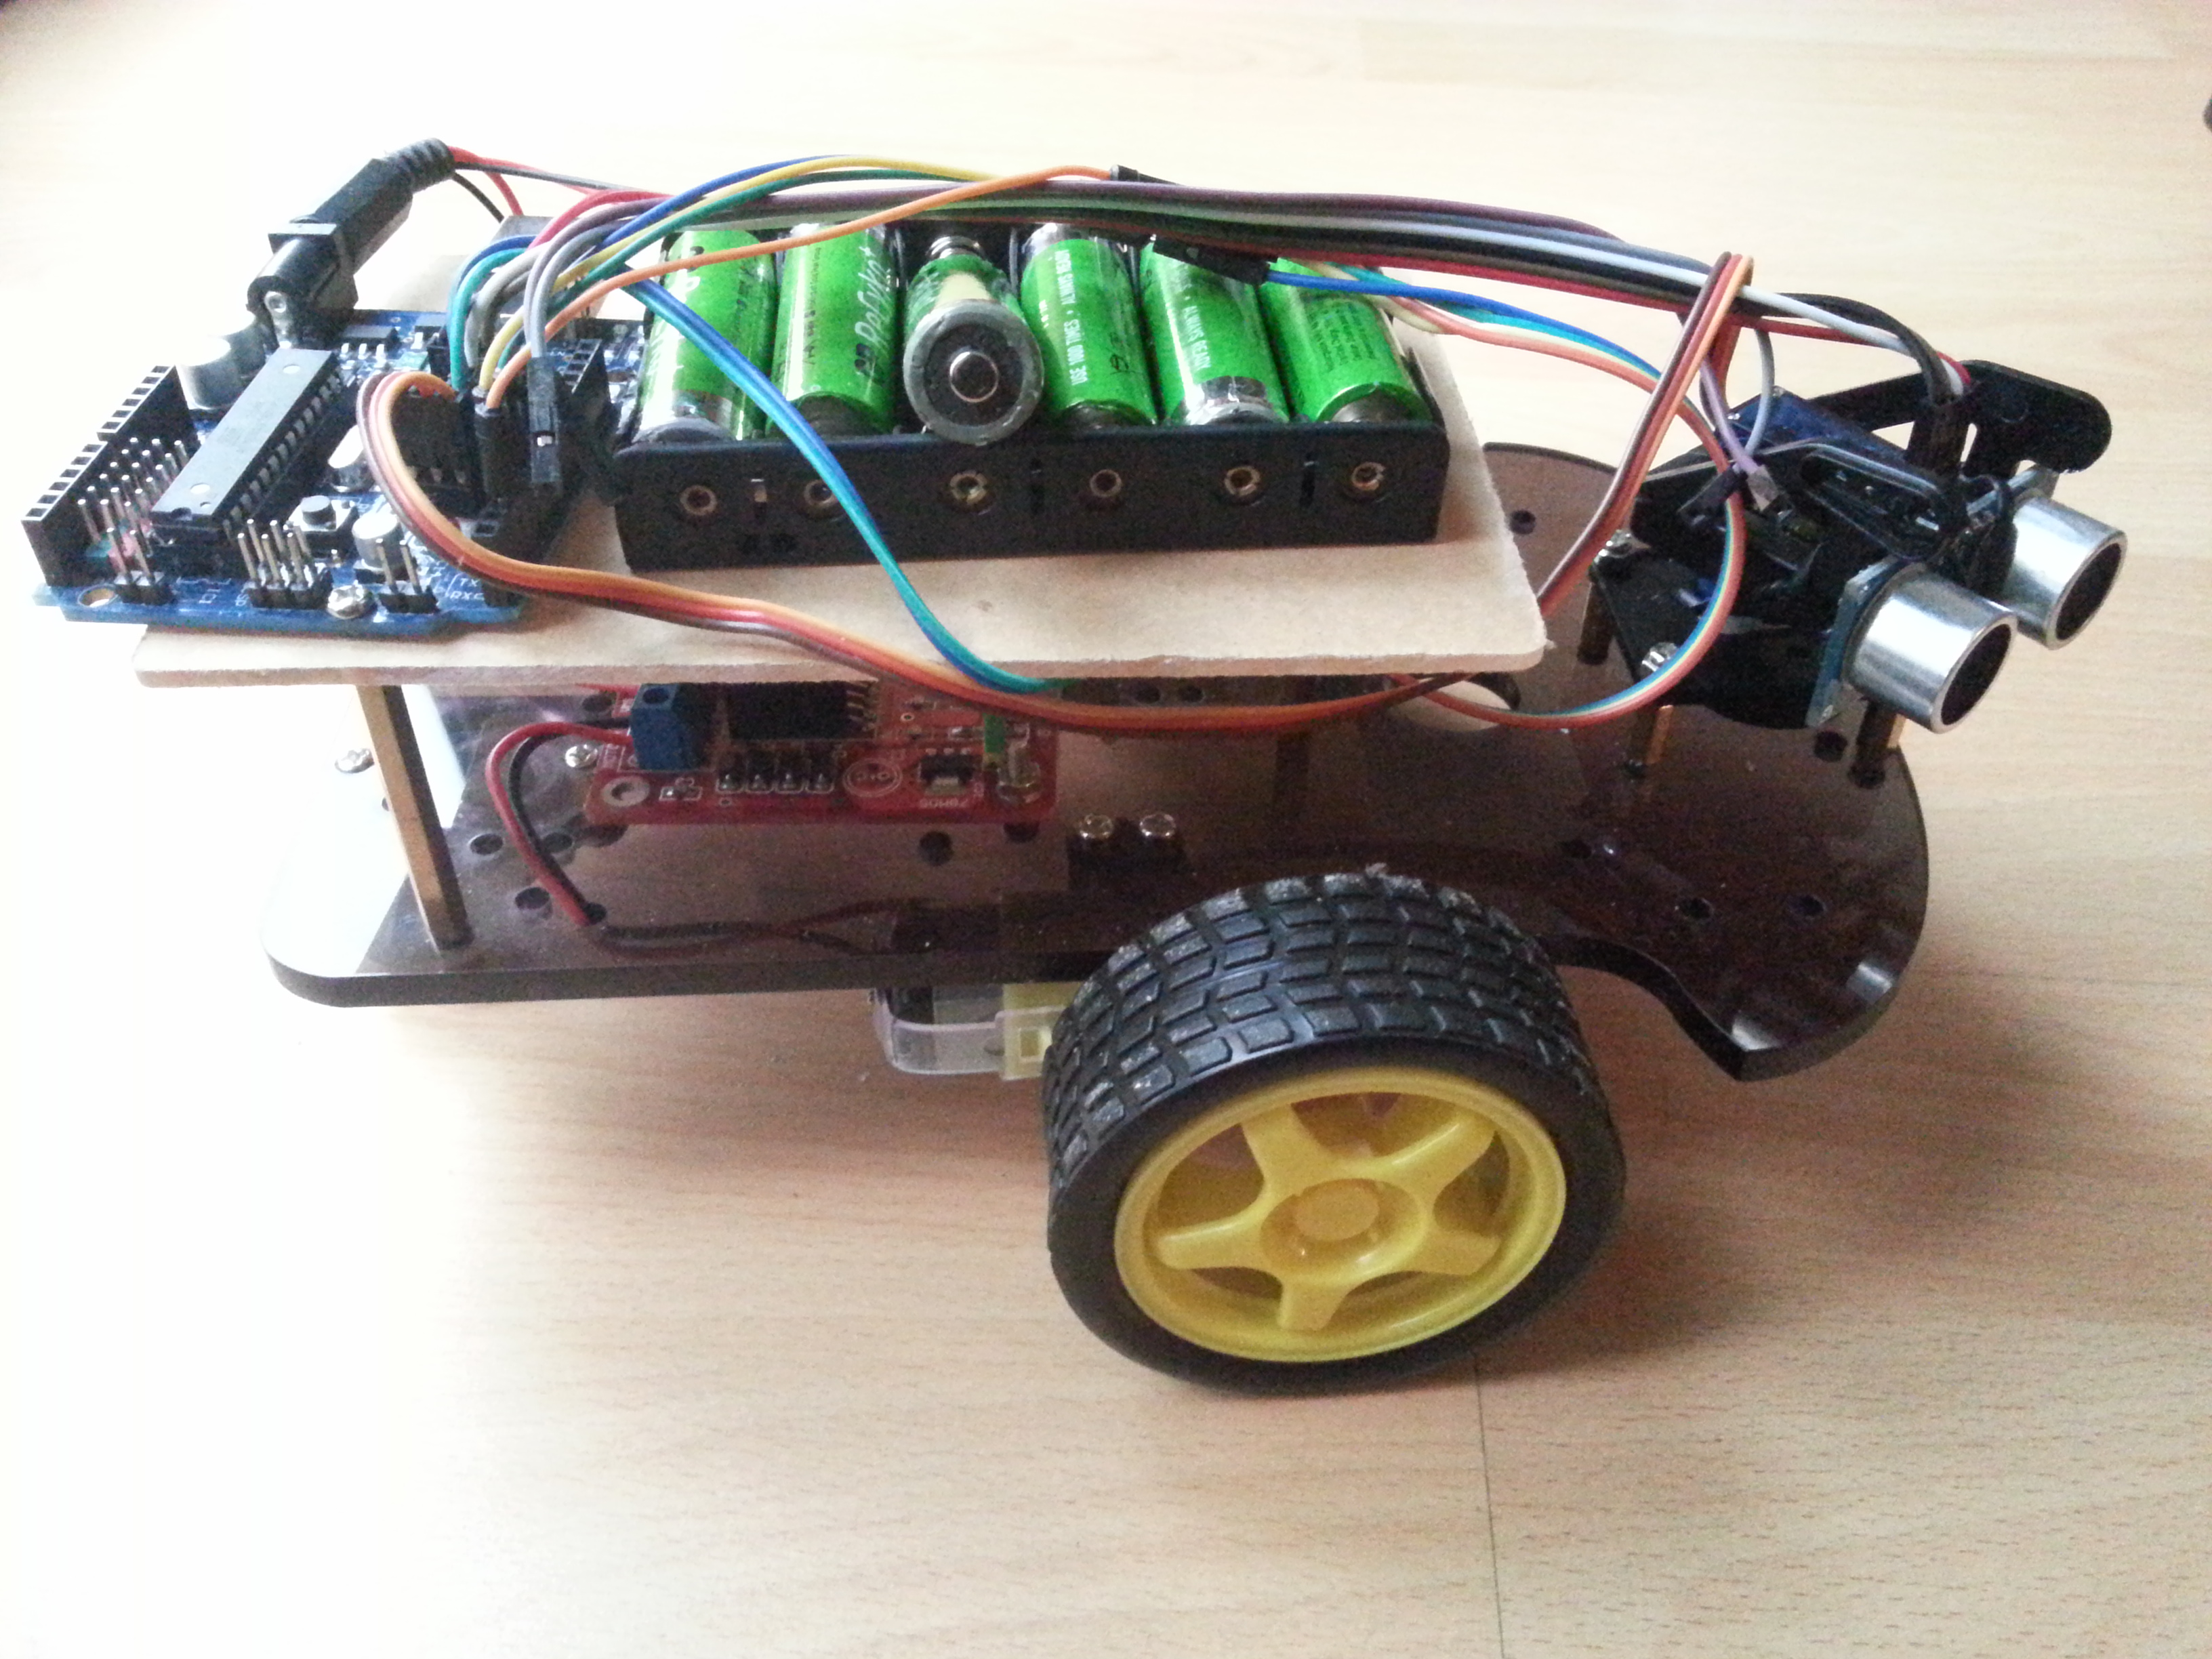 Cheapest arduino based robot parts examples of use and